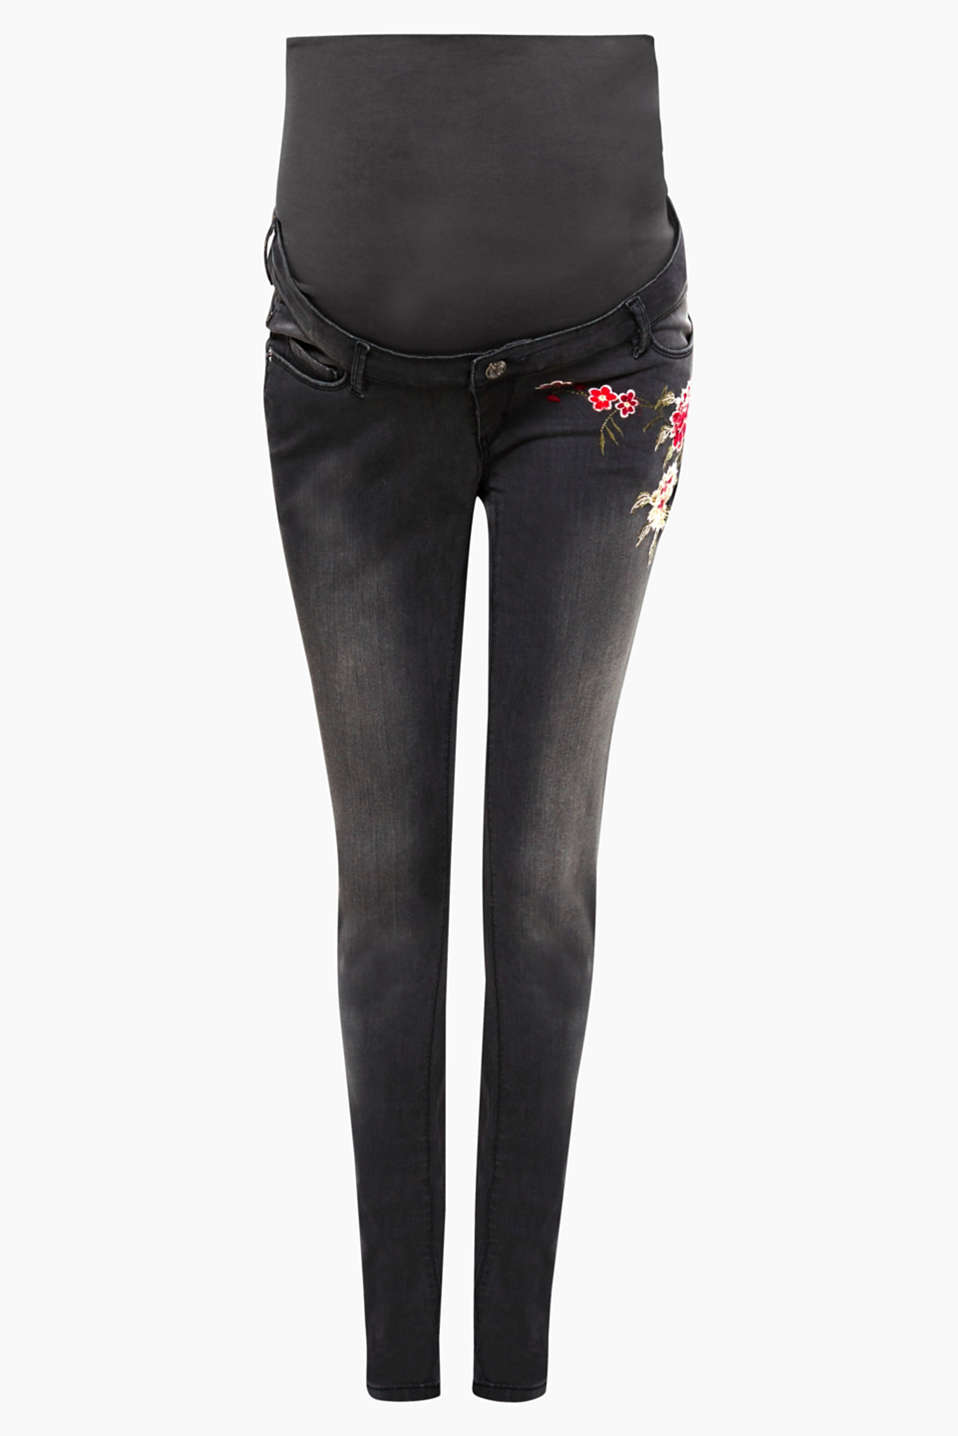 We love floral embroidery! The front pocket on these grey stretch jeans is sure to turn heads!